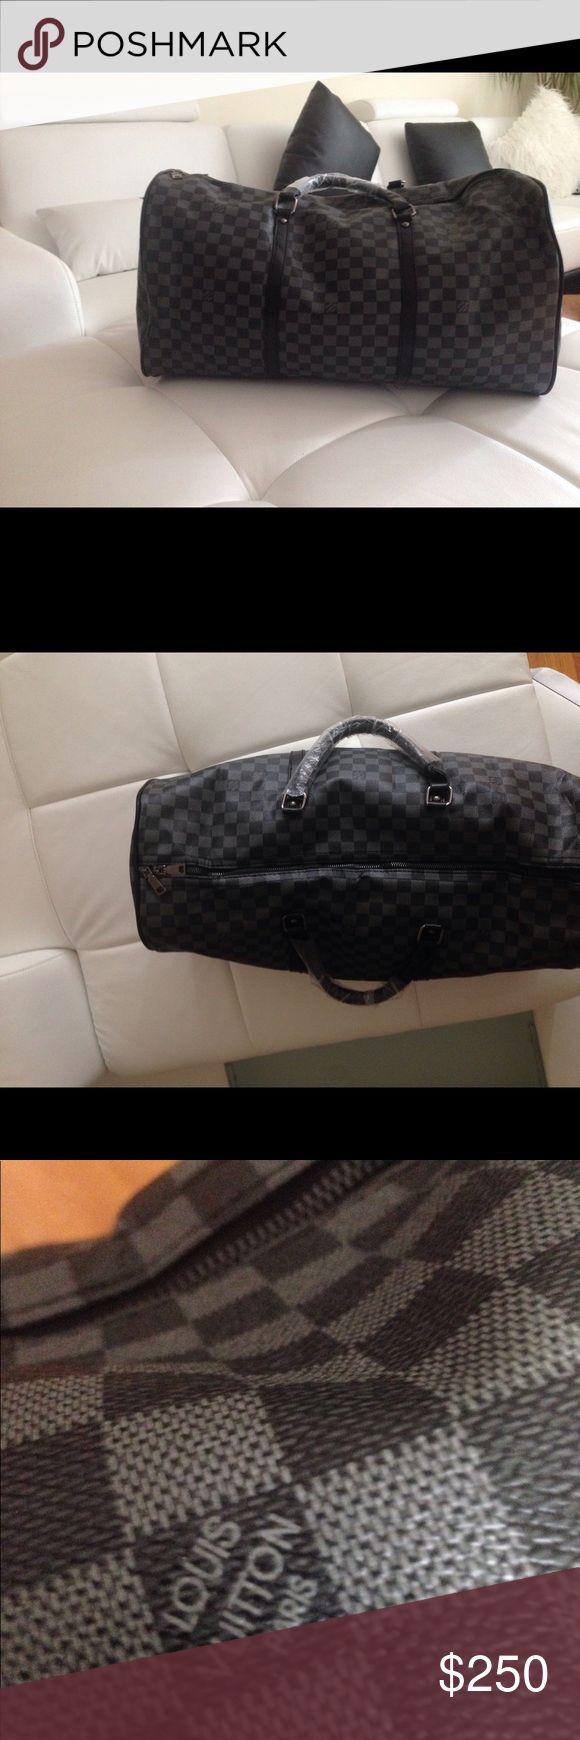 Louis Vuitton duffel bag brand new This Louis Vuitton duffel bag is brand new, the strap for it is not the best but it does the job, I will ship out the same day and make sure that the packaging is 100% neat and correct,this duffle bag is a REP, thank you Louis Vuitton Bags